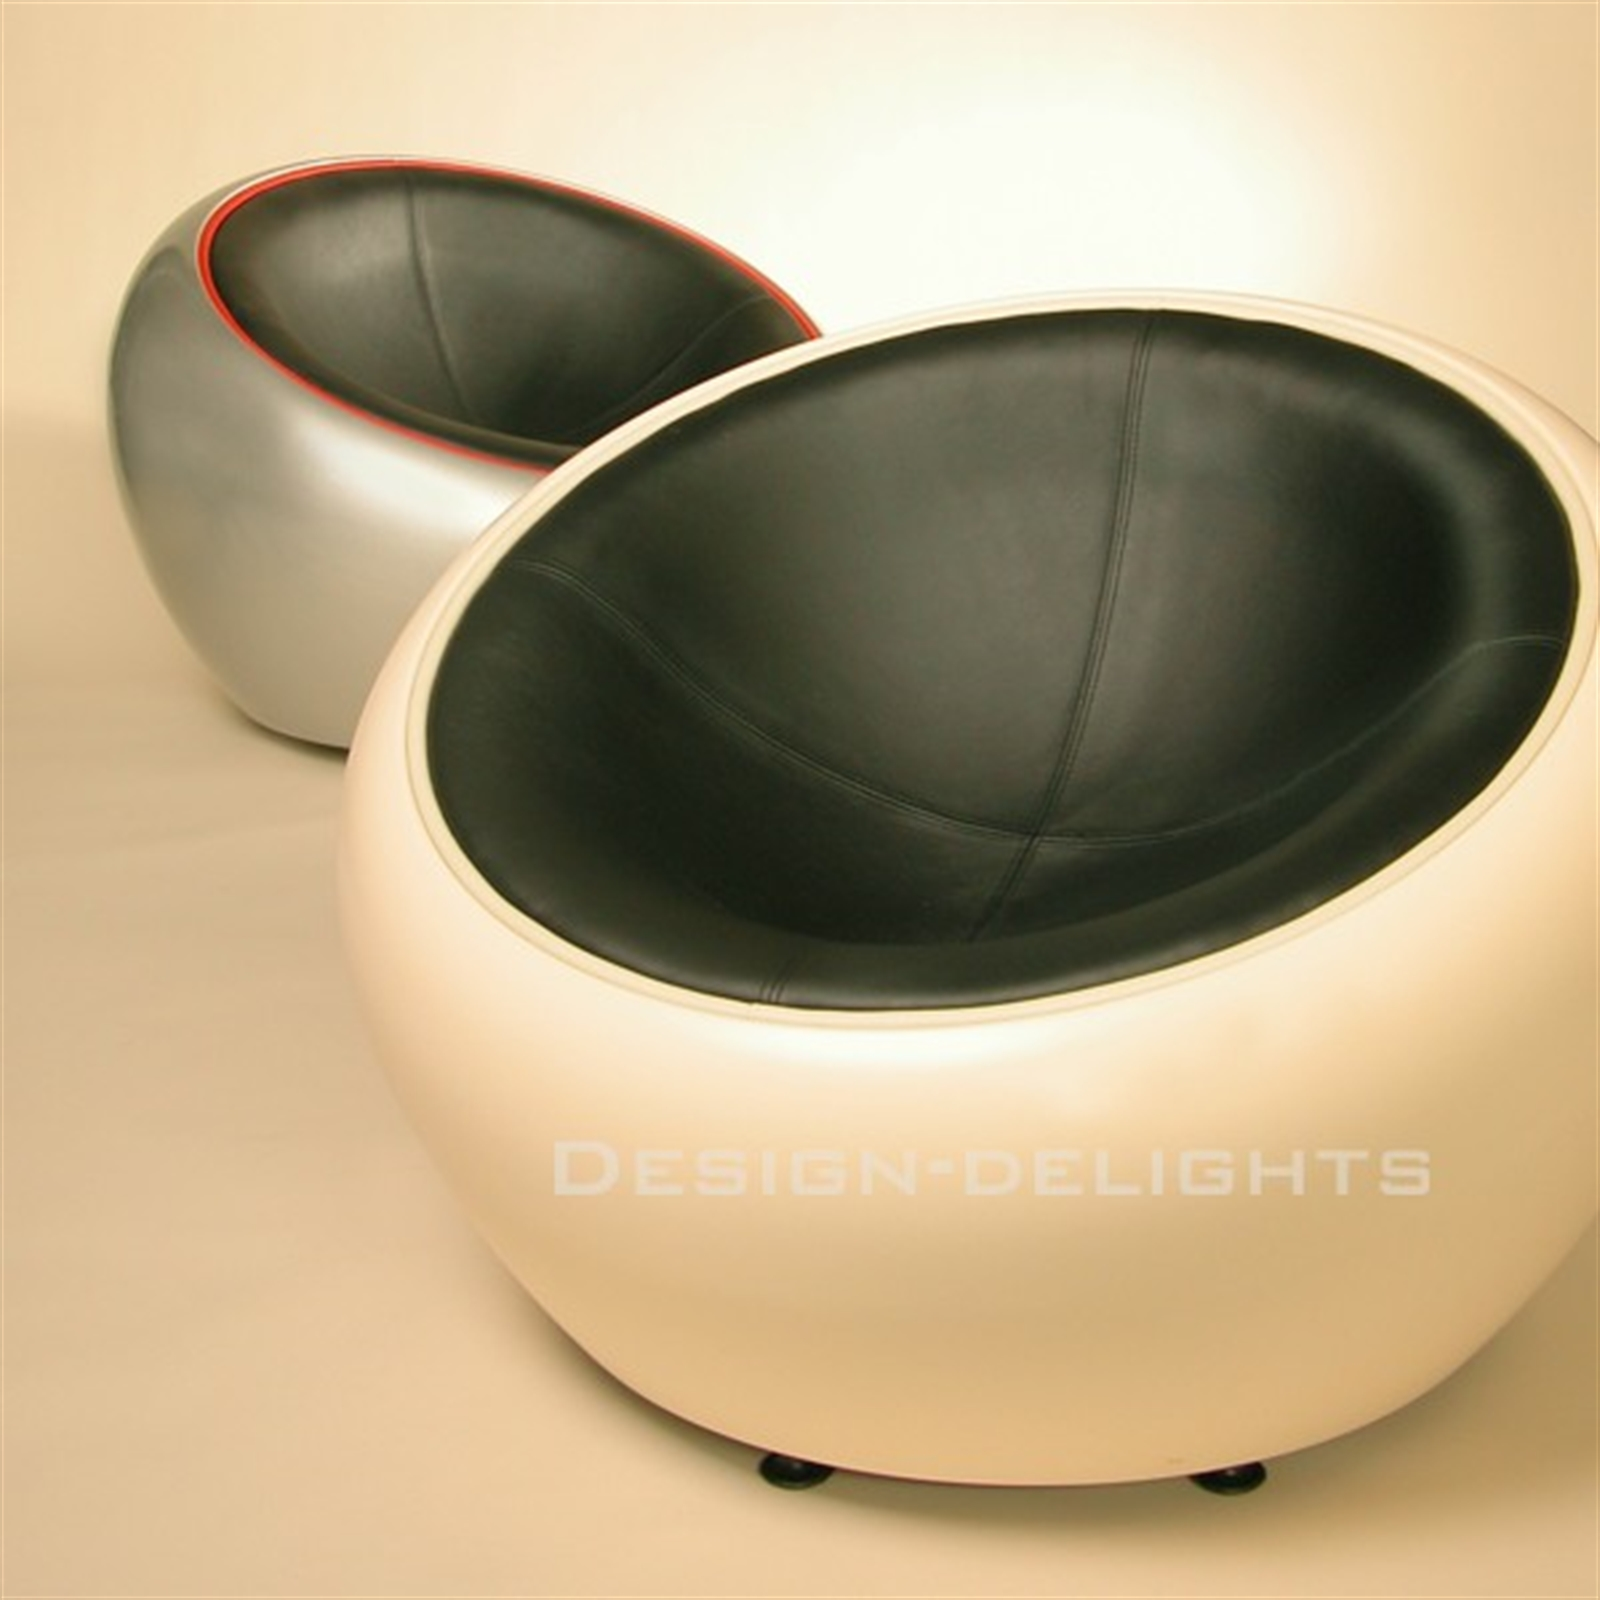 Great Image Is Loading RETRO LOUNGE EGG CHAIR Red Black Bowl Lounge